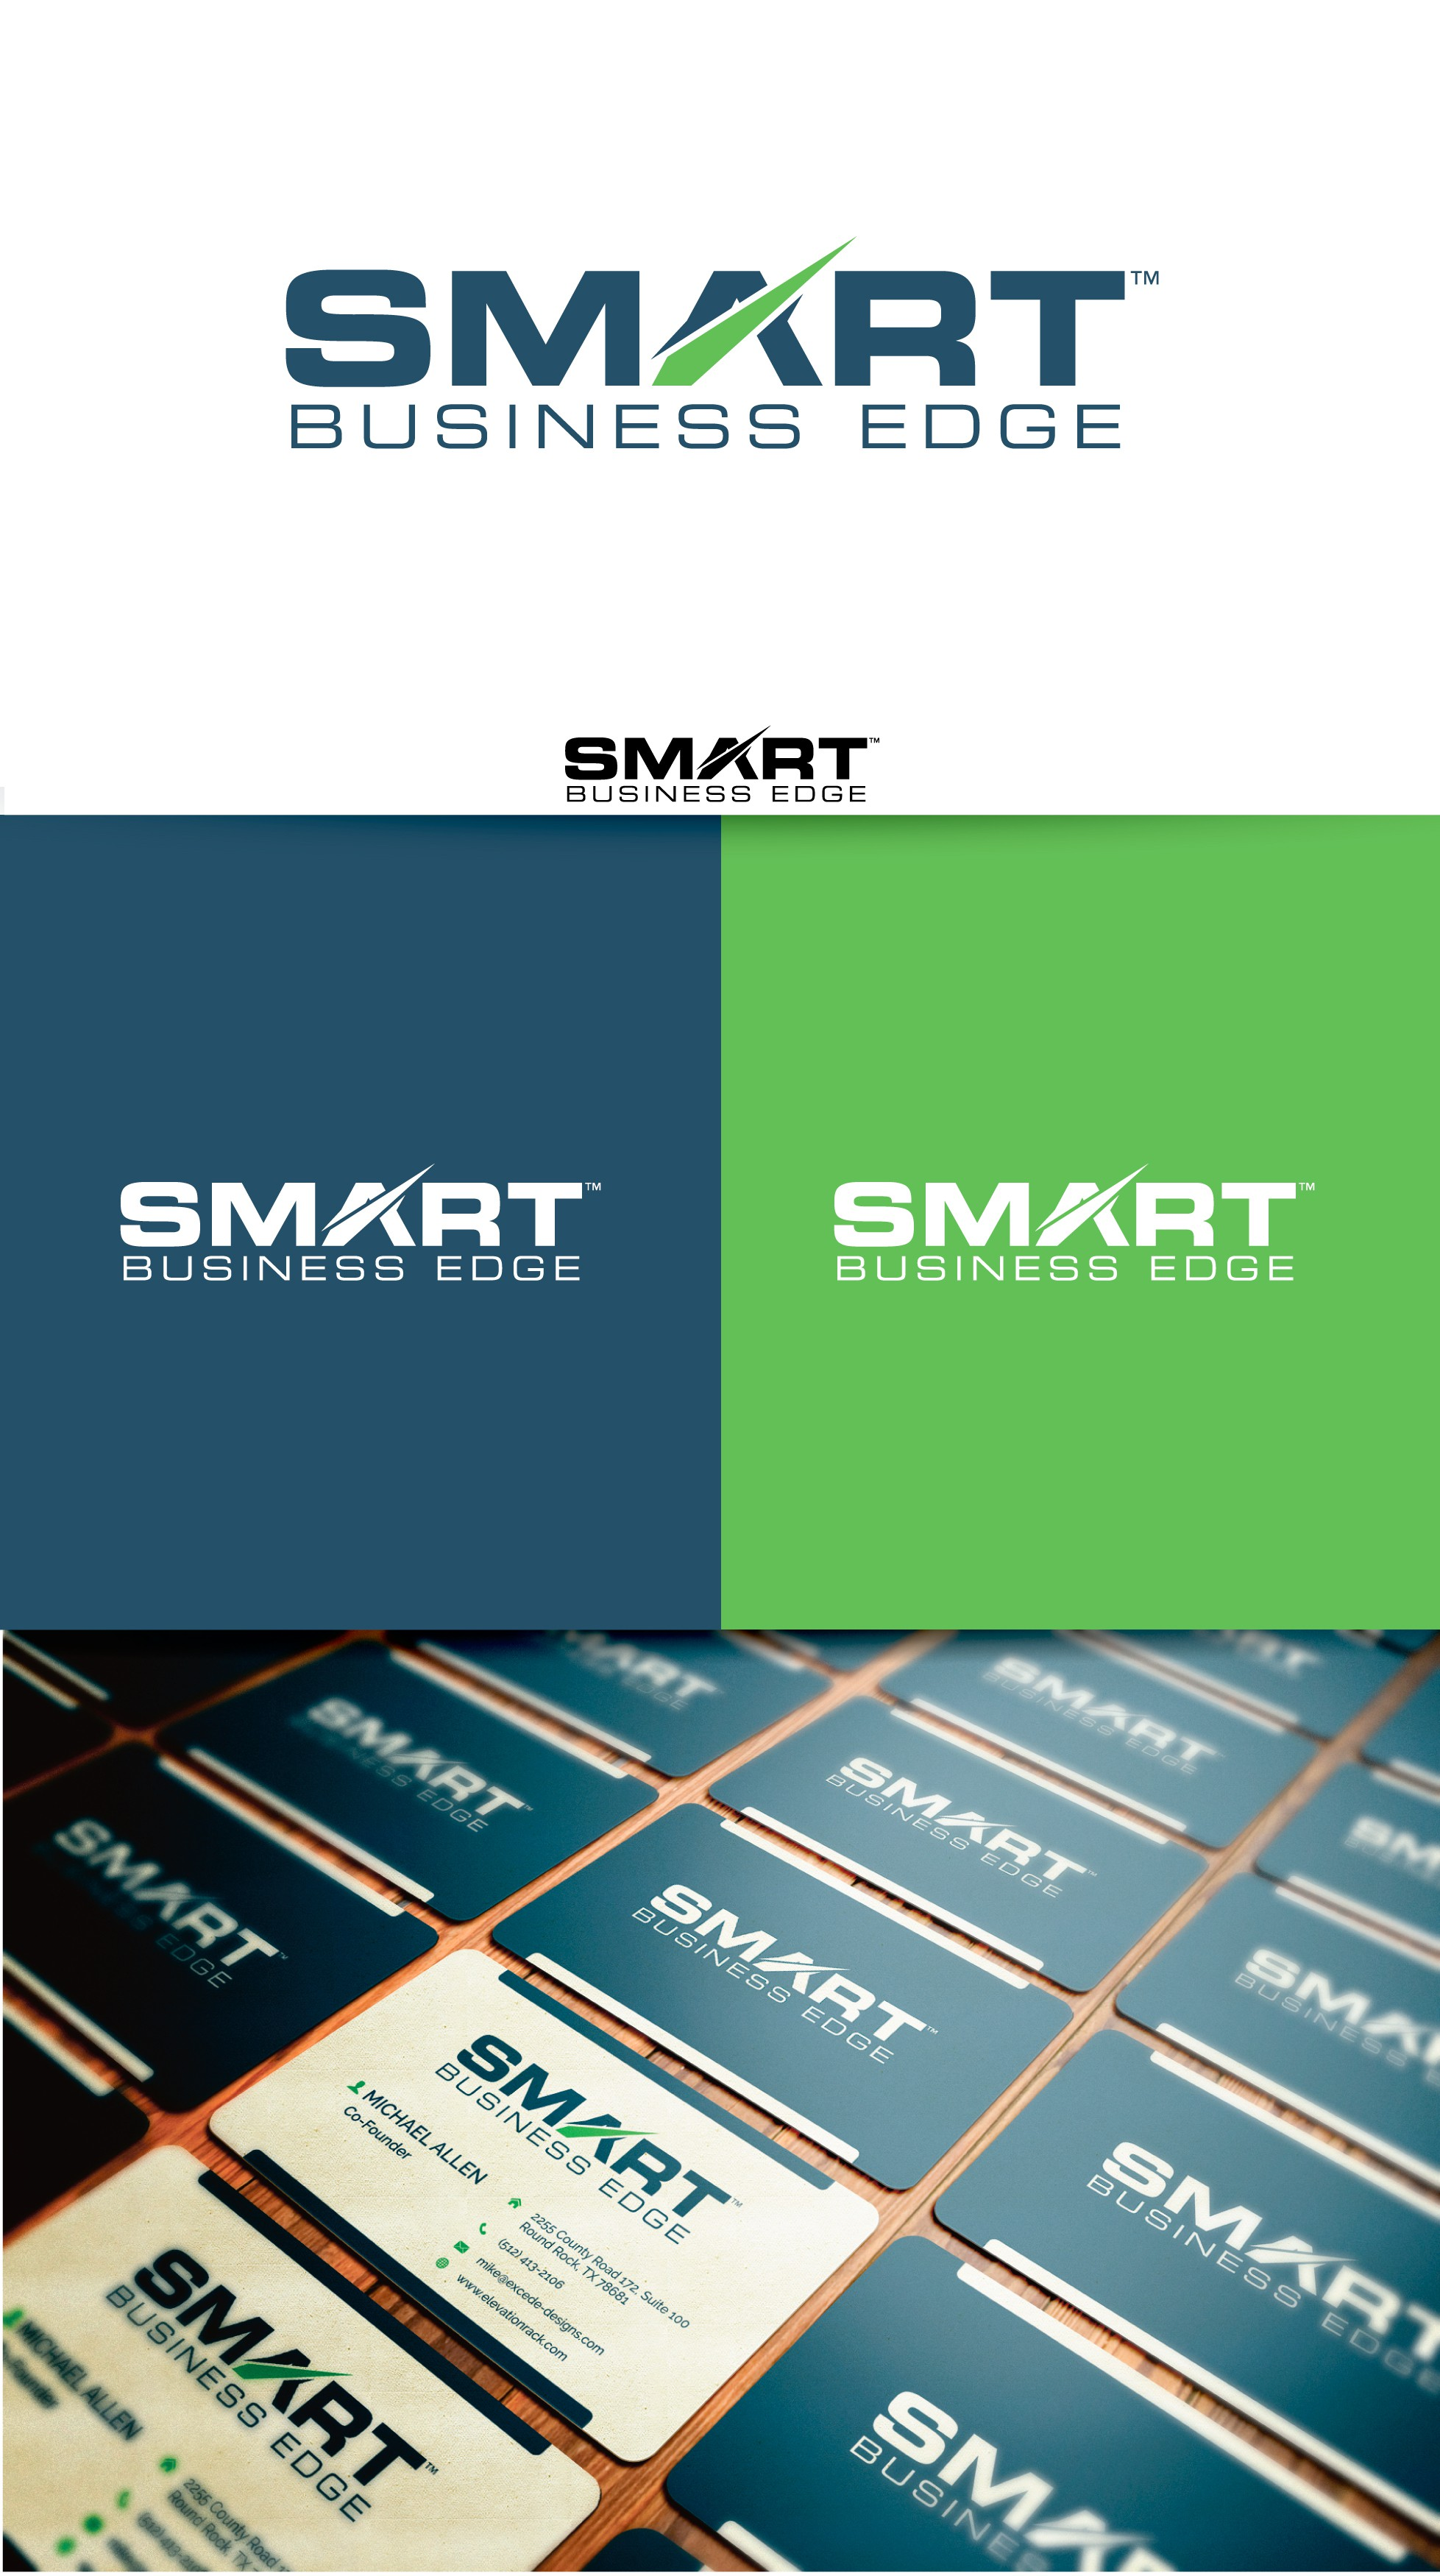 Help me Create THE PERFECT LOGO for:  Smart Business Edge!!